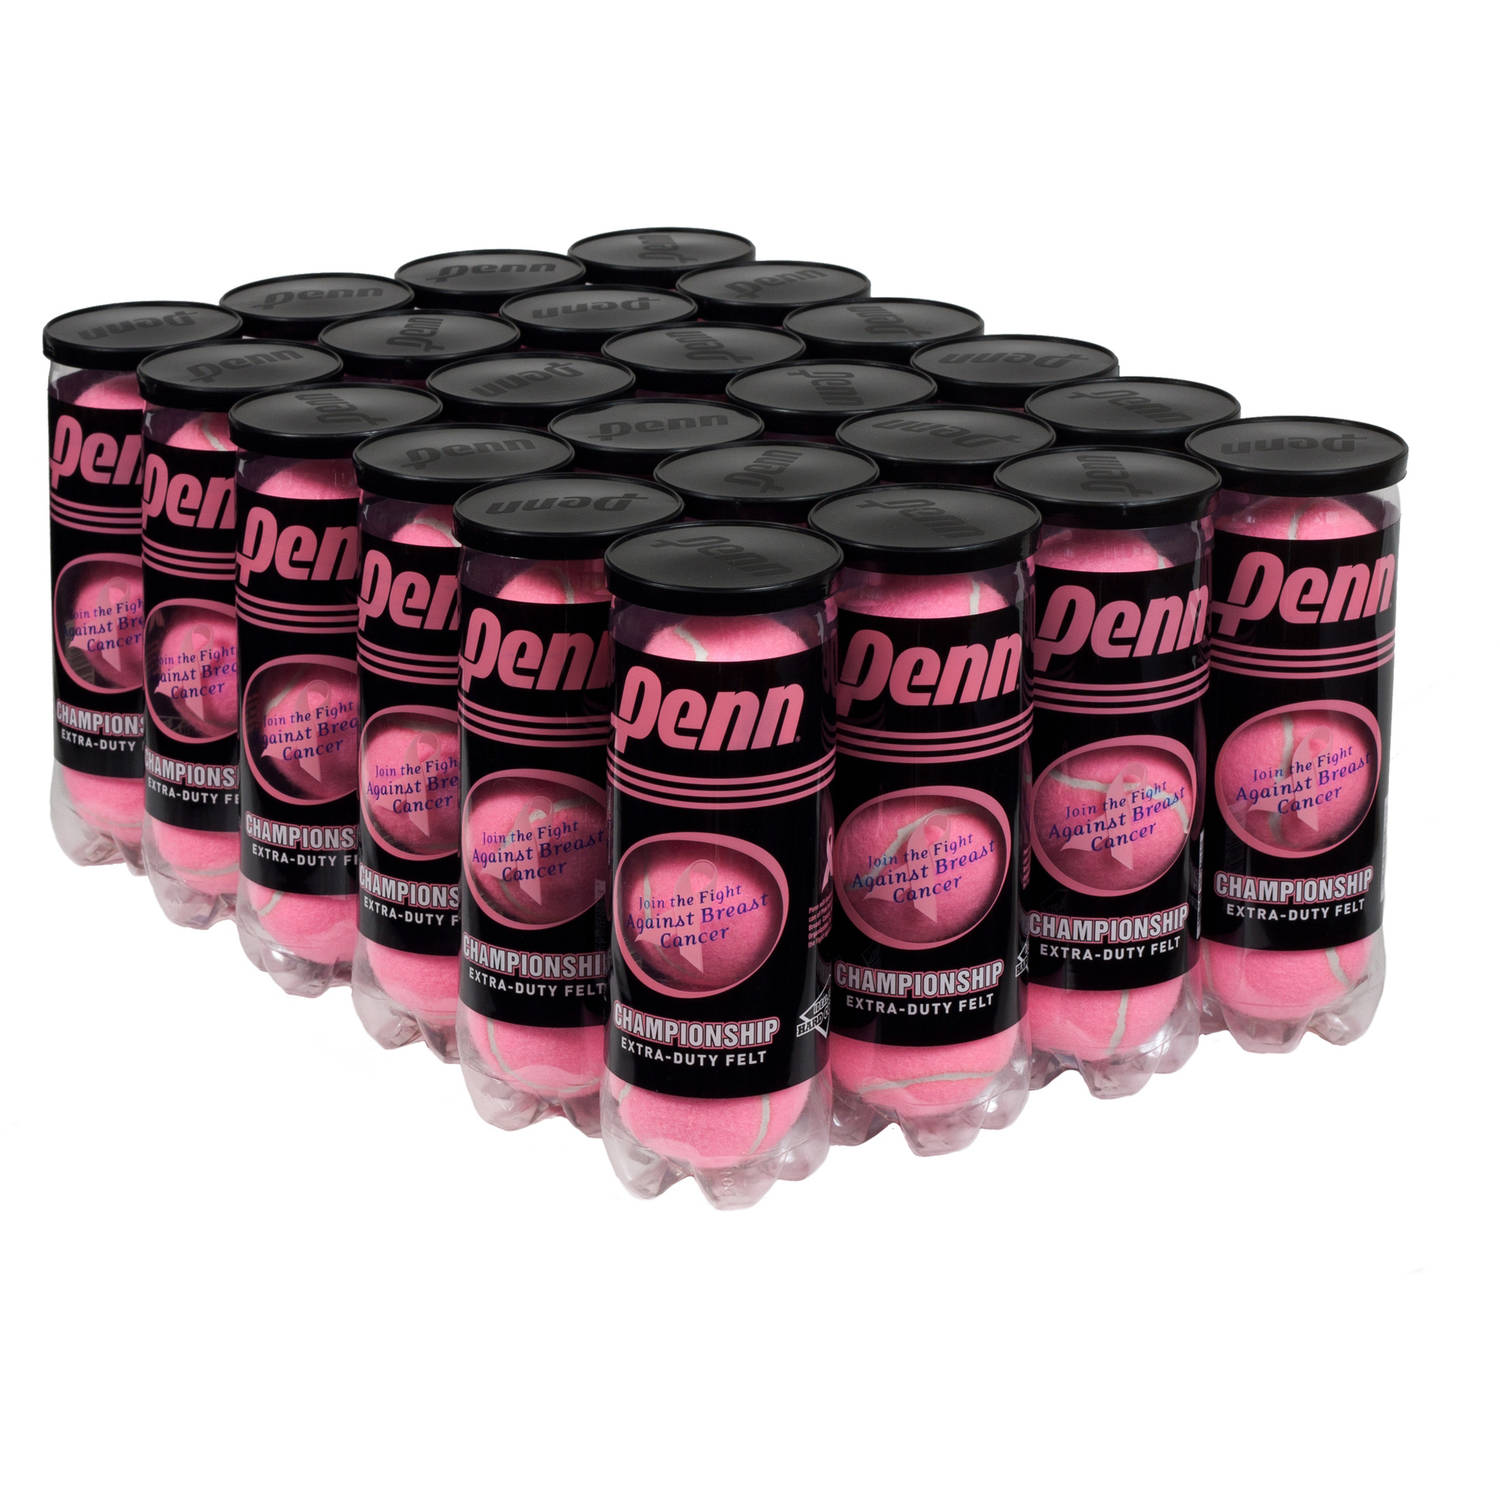 Penn Championship Extra Duty Pink Tennis Ball Case (24 cans, 72 balls)